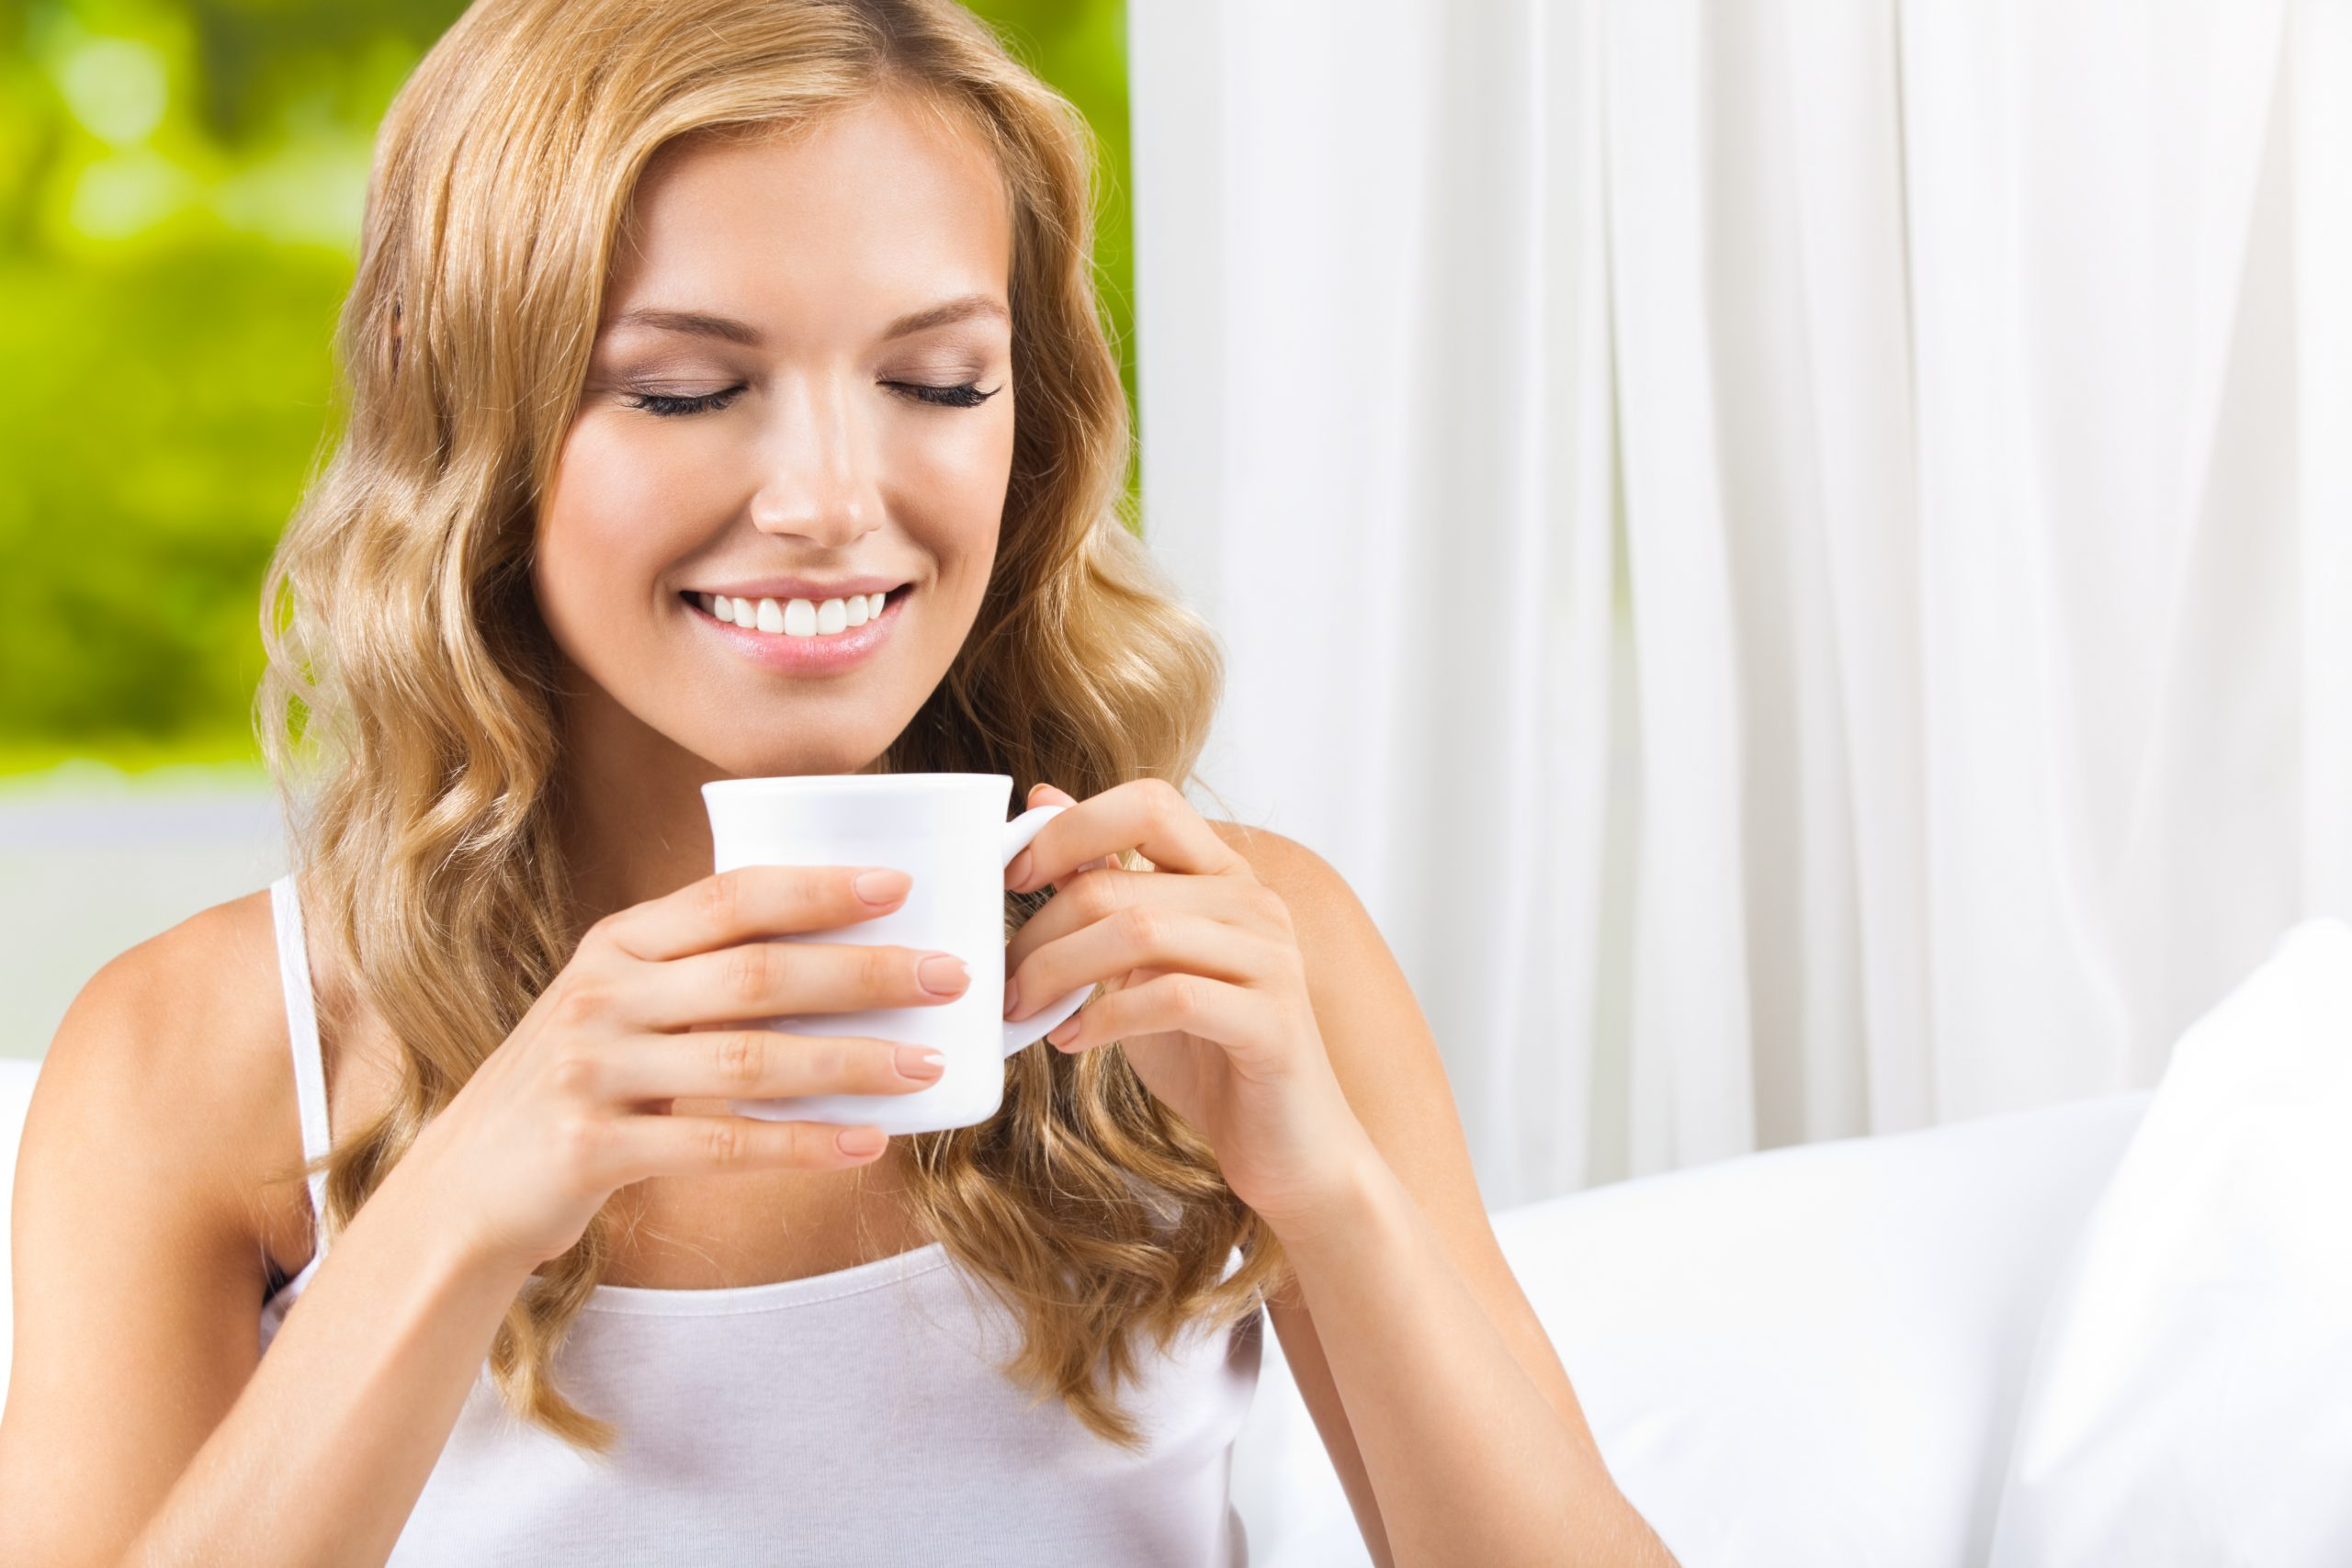 7 Reasons Why Drinking Tea Is Good for You